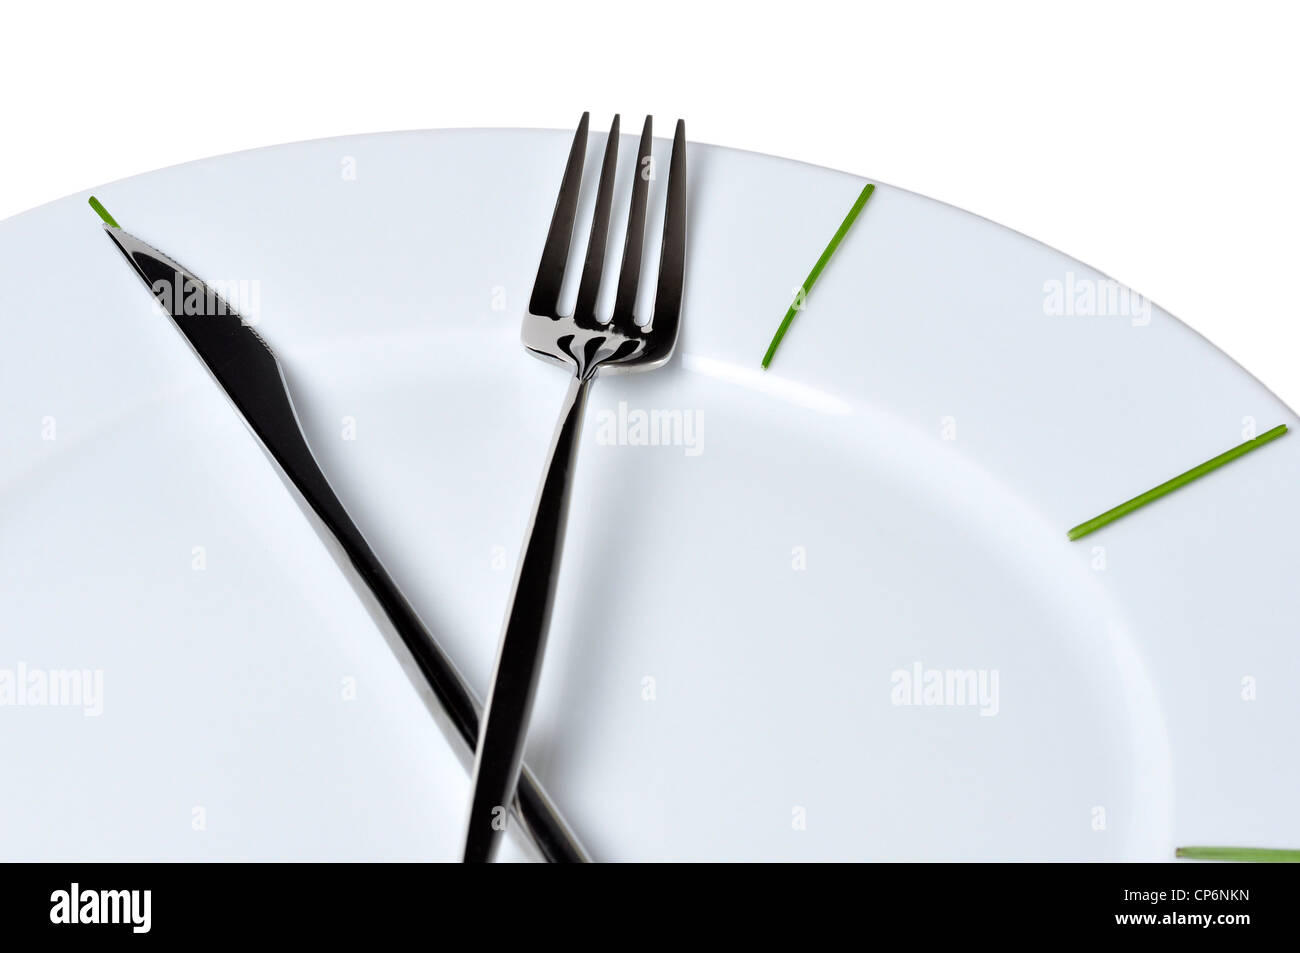 Clock made of knife and fork, isolated on white background - Stock Image